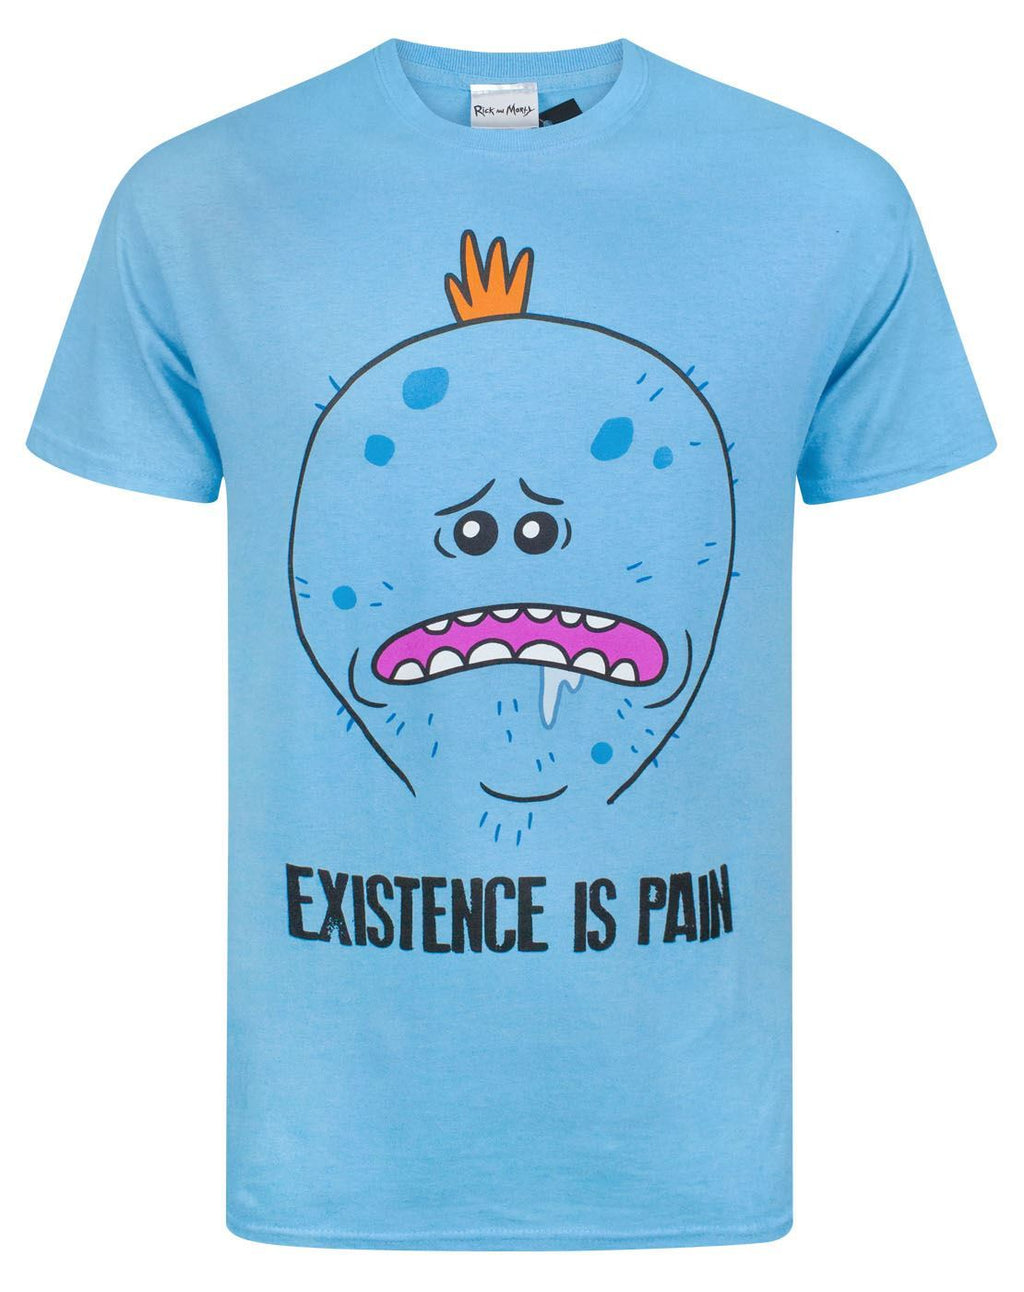 Rick And Morty Meeseeks Existence Is Pain Men's T-Shirt